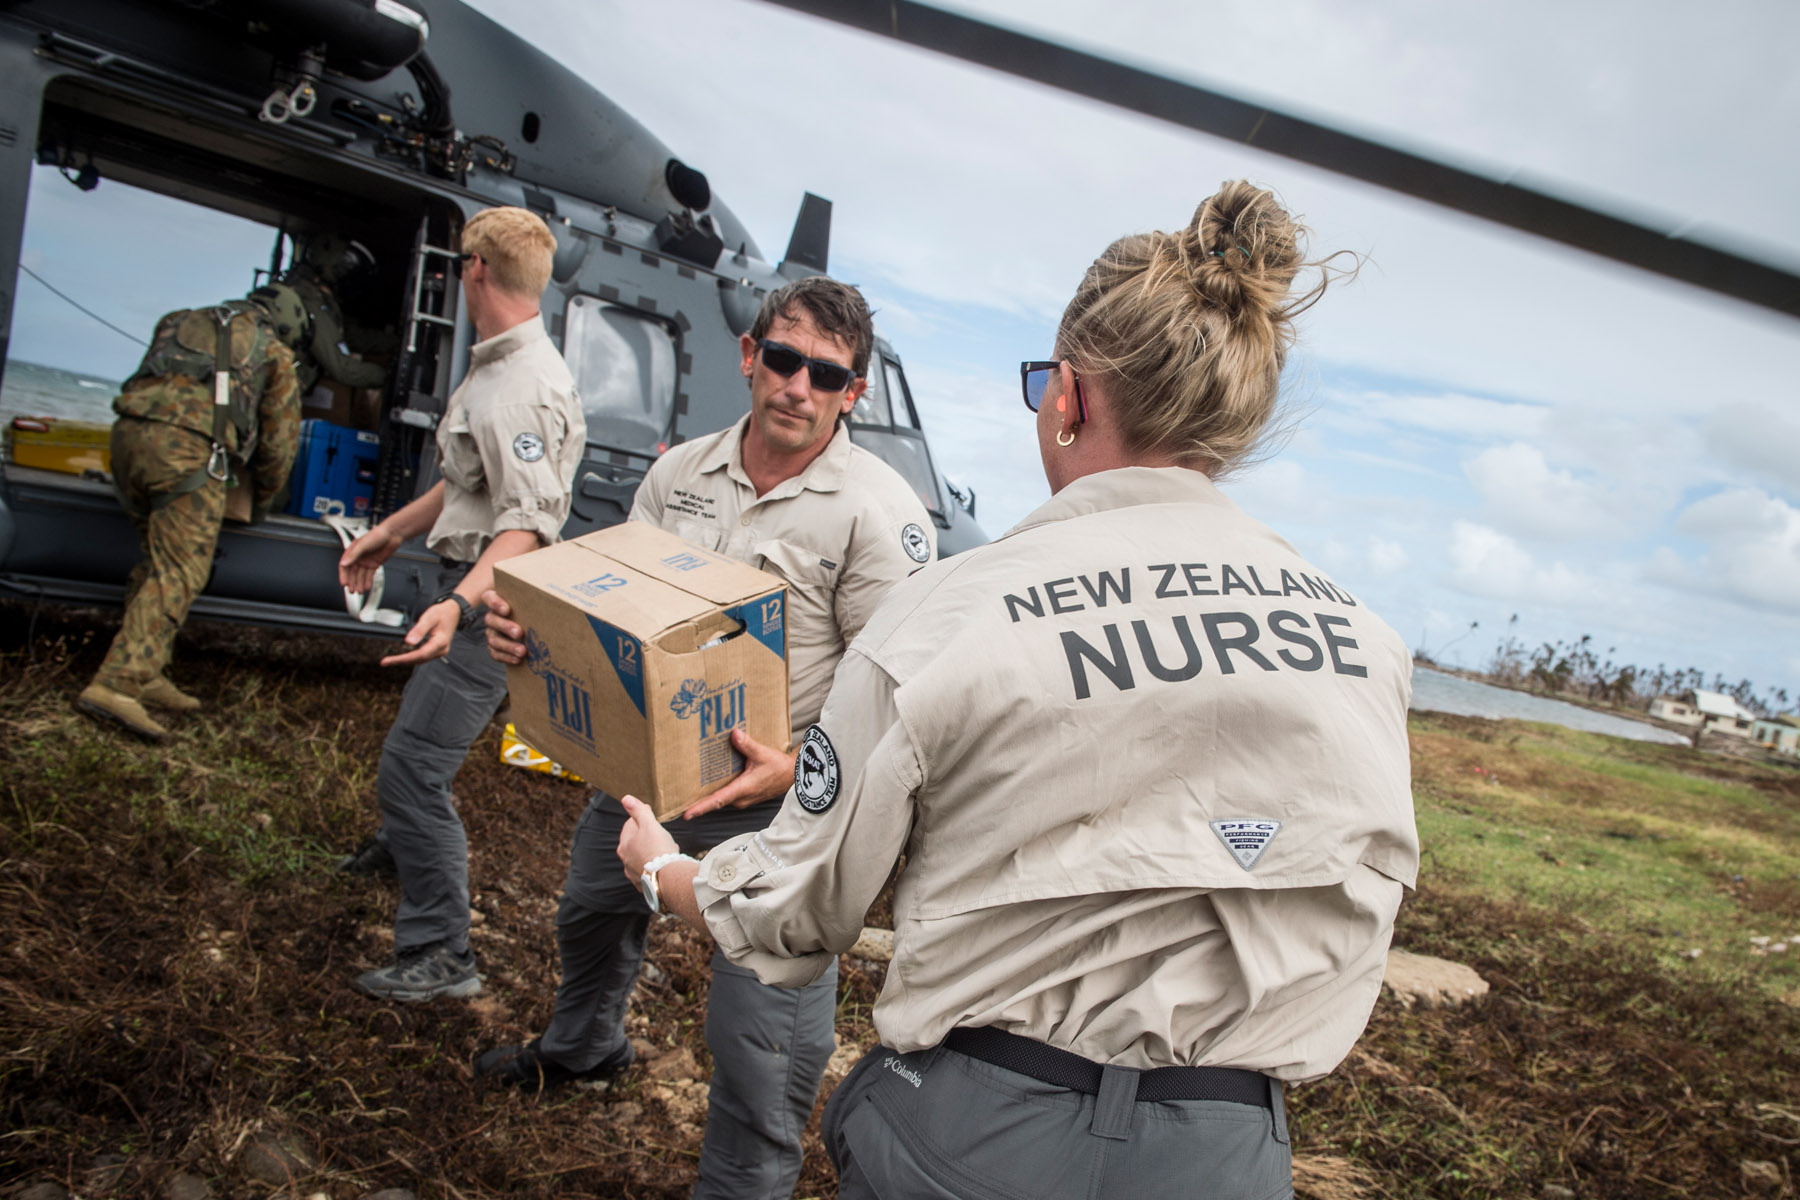 Members of NZ Medical Assistance Team help unload aid and equipment in Nasau, Koro Island following Tropical Cyclone Winston (image: NZDF / NZ MFAT)